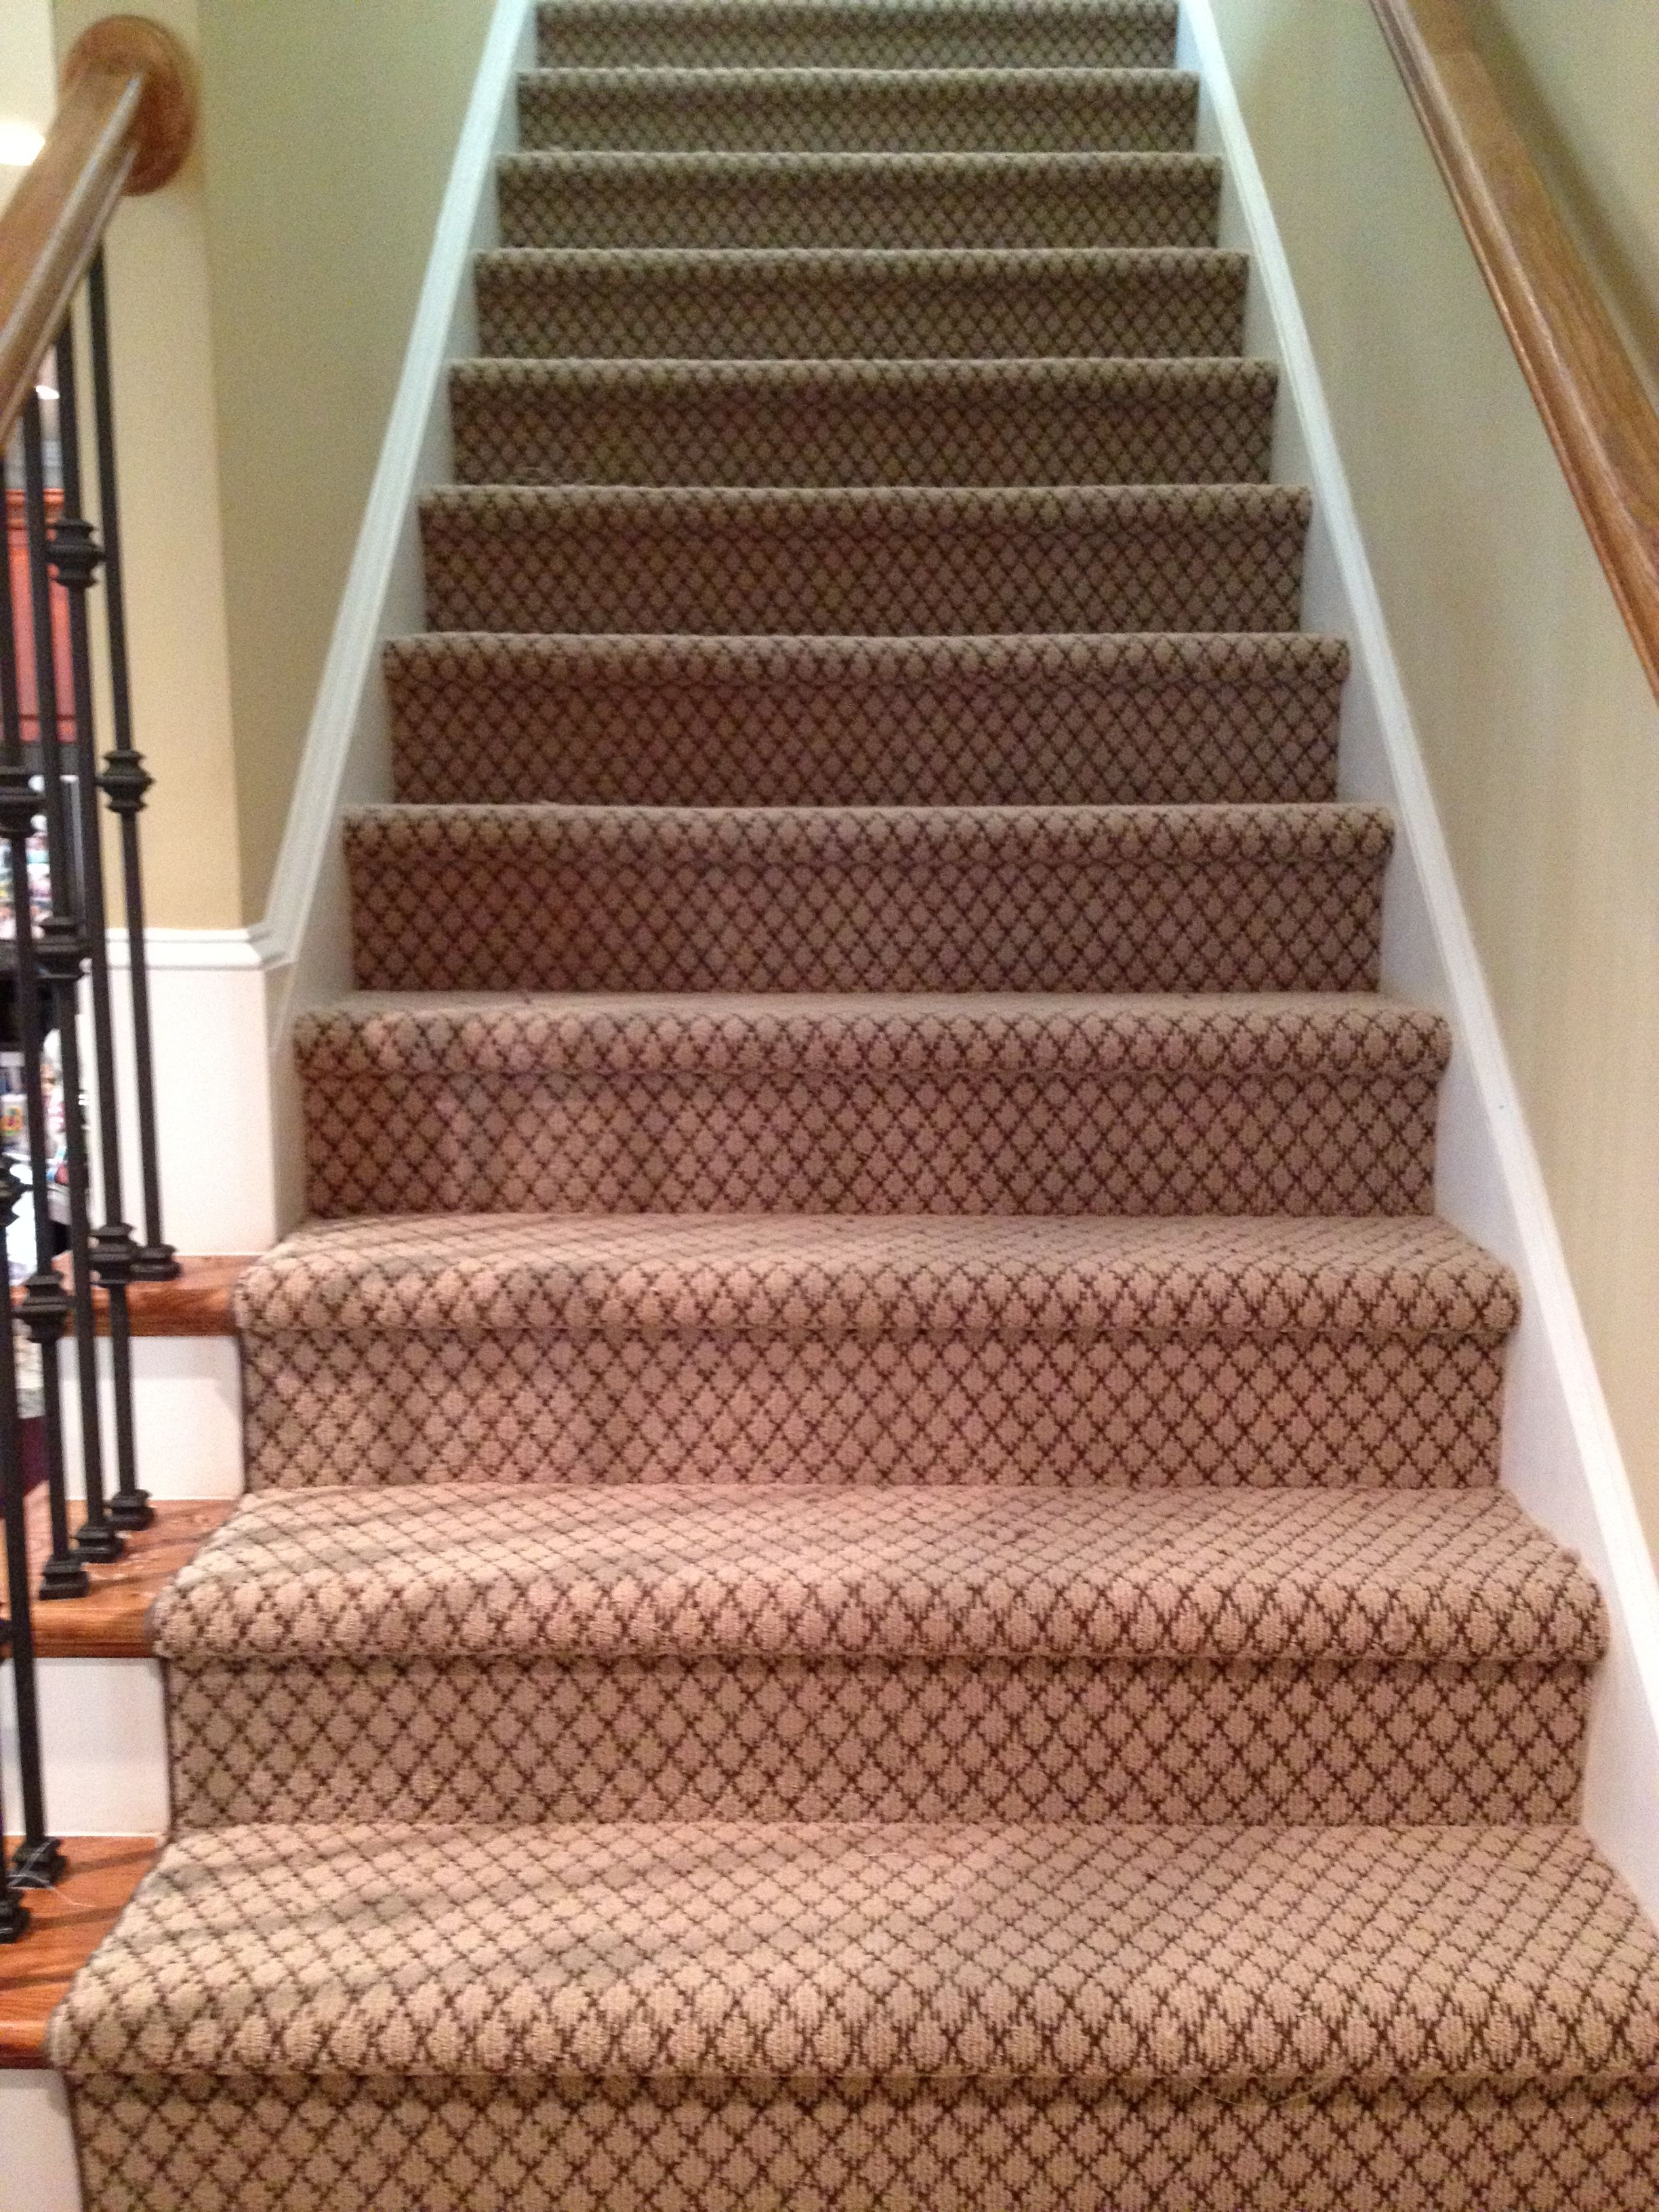 Stair Runner We Installed Yesterday Masland Tristan Color